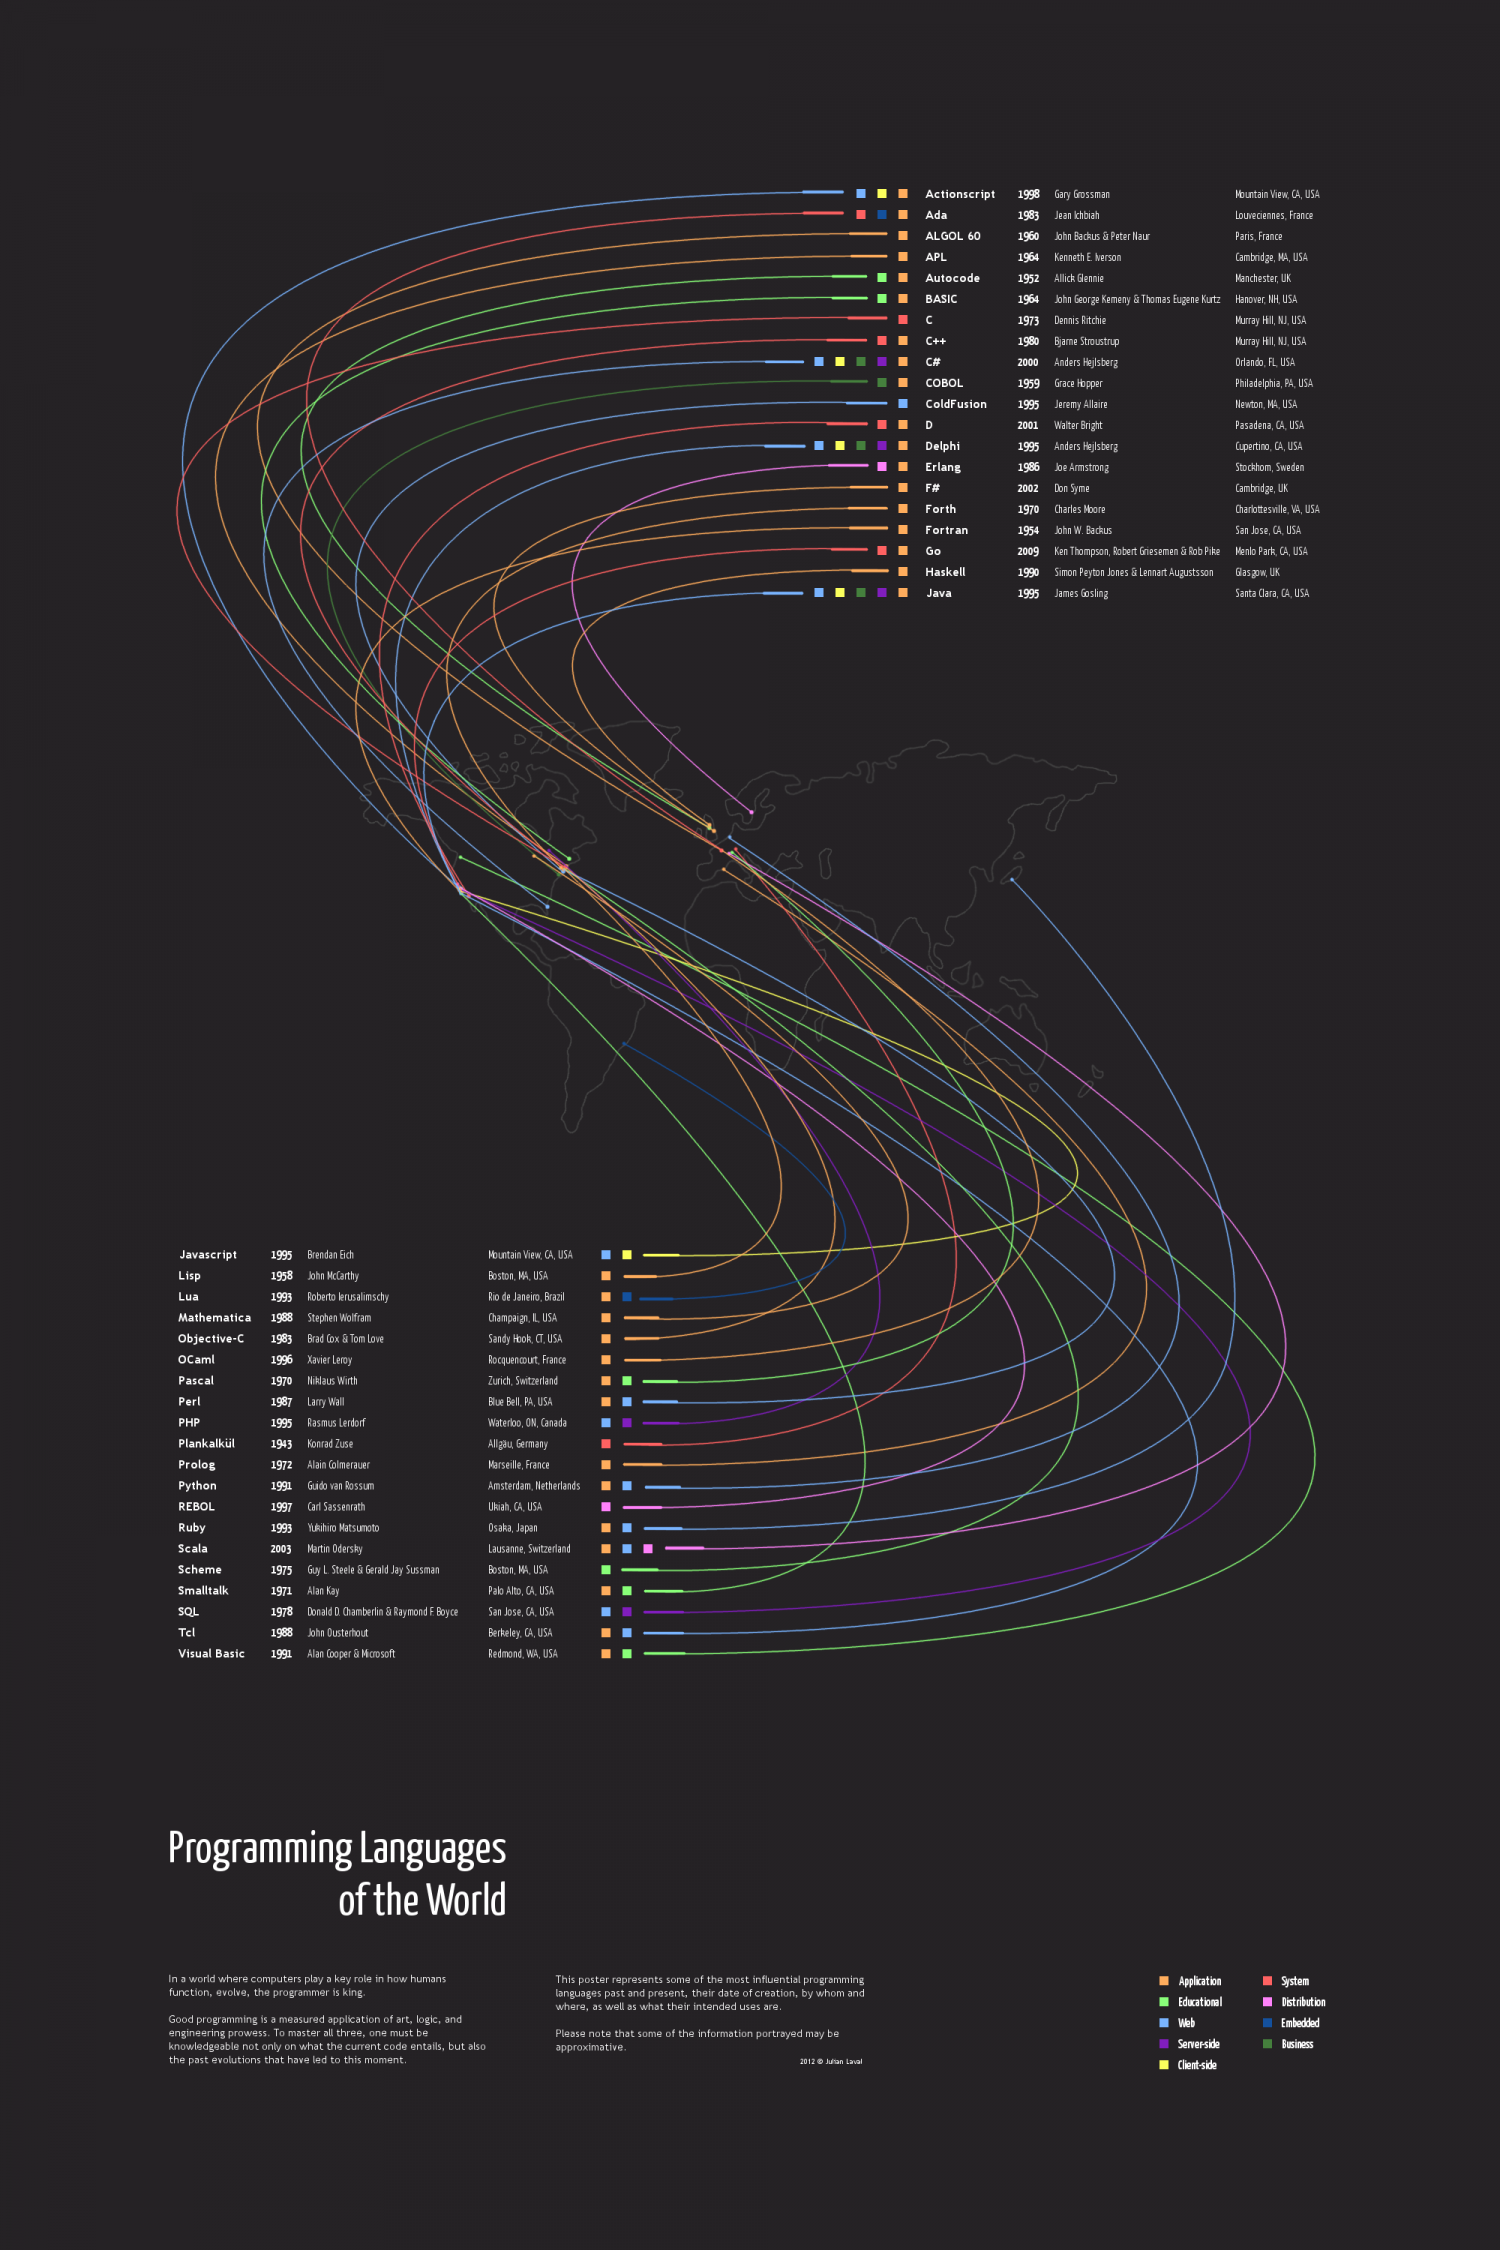 Programming Languages of the World Infographic